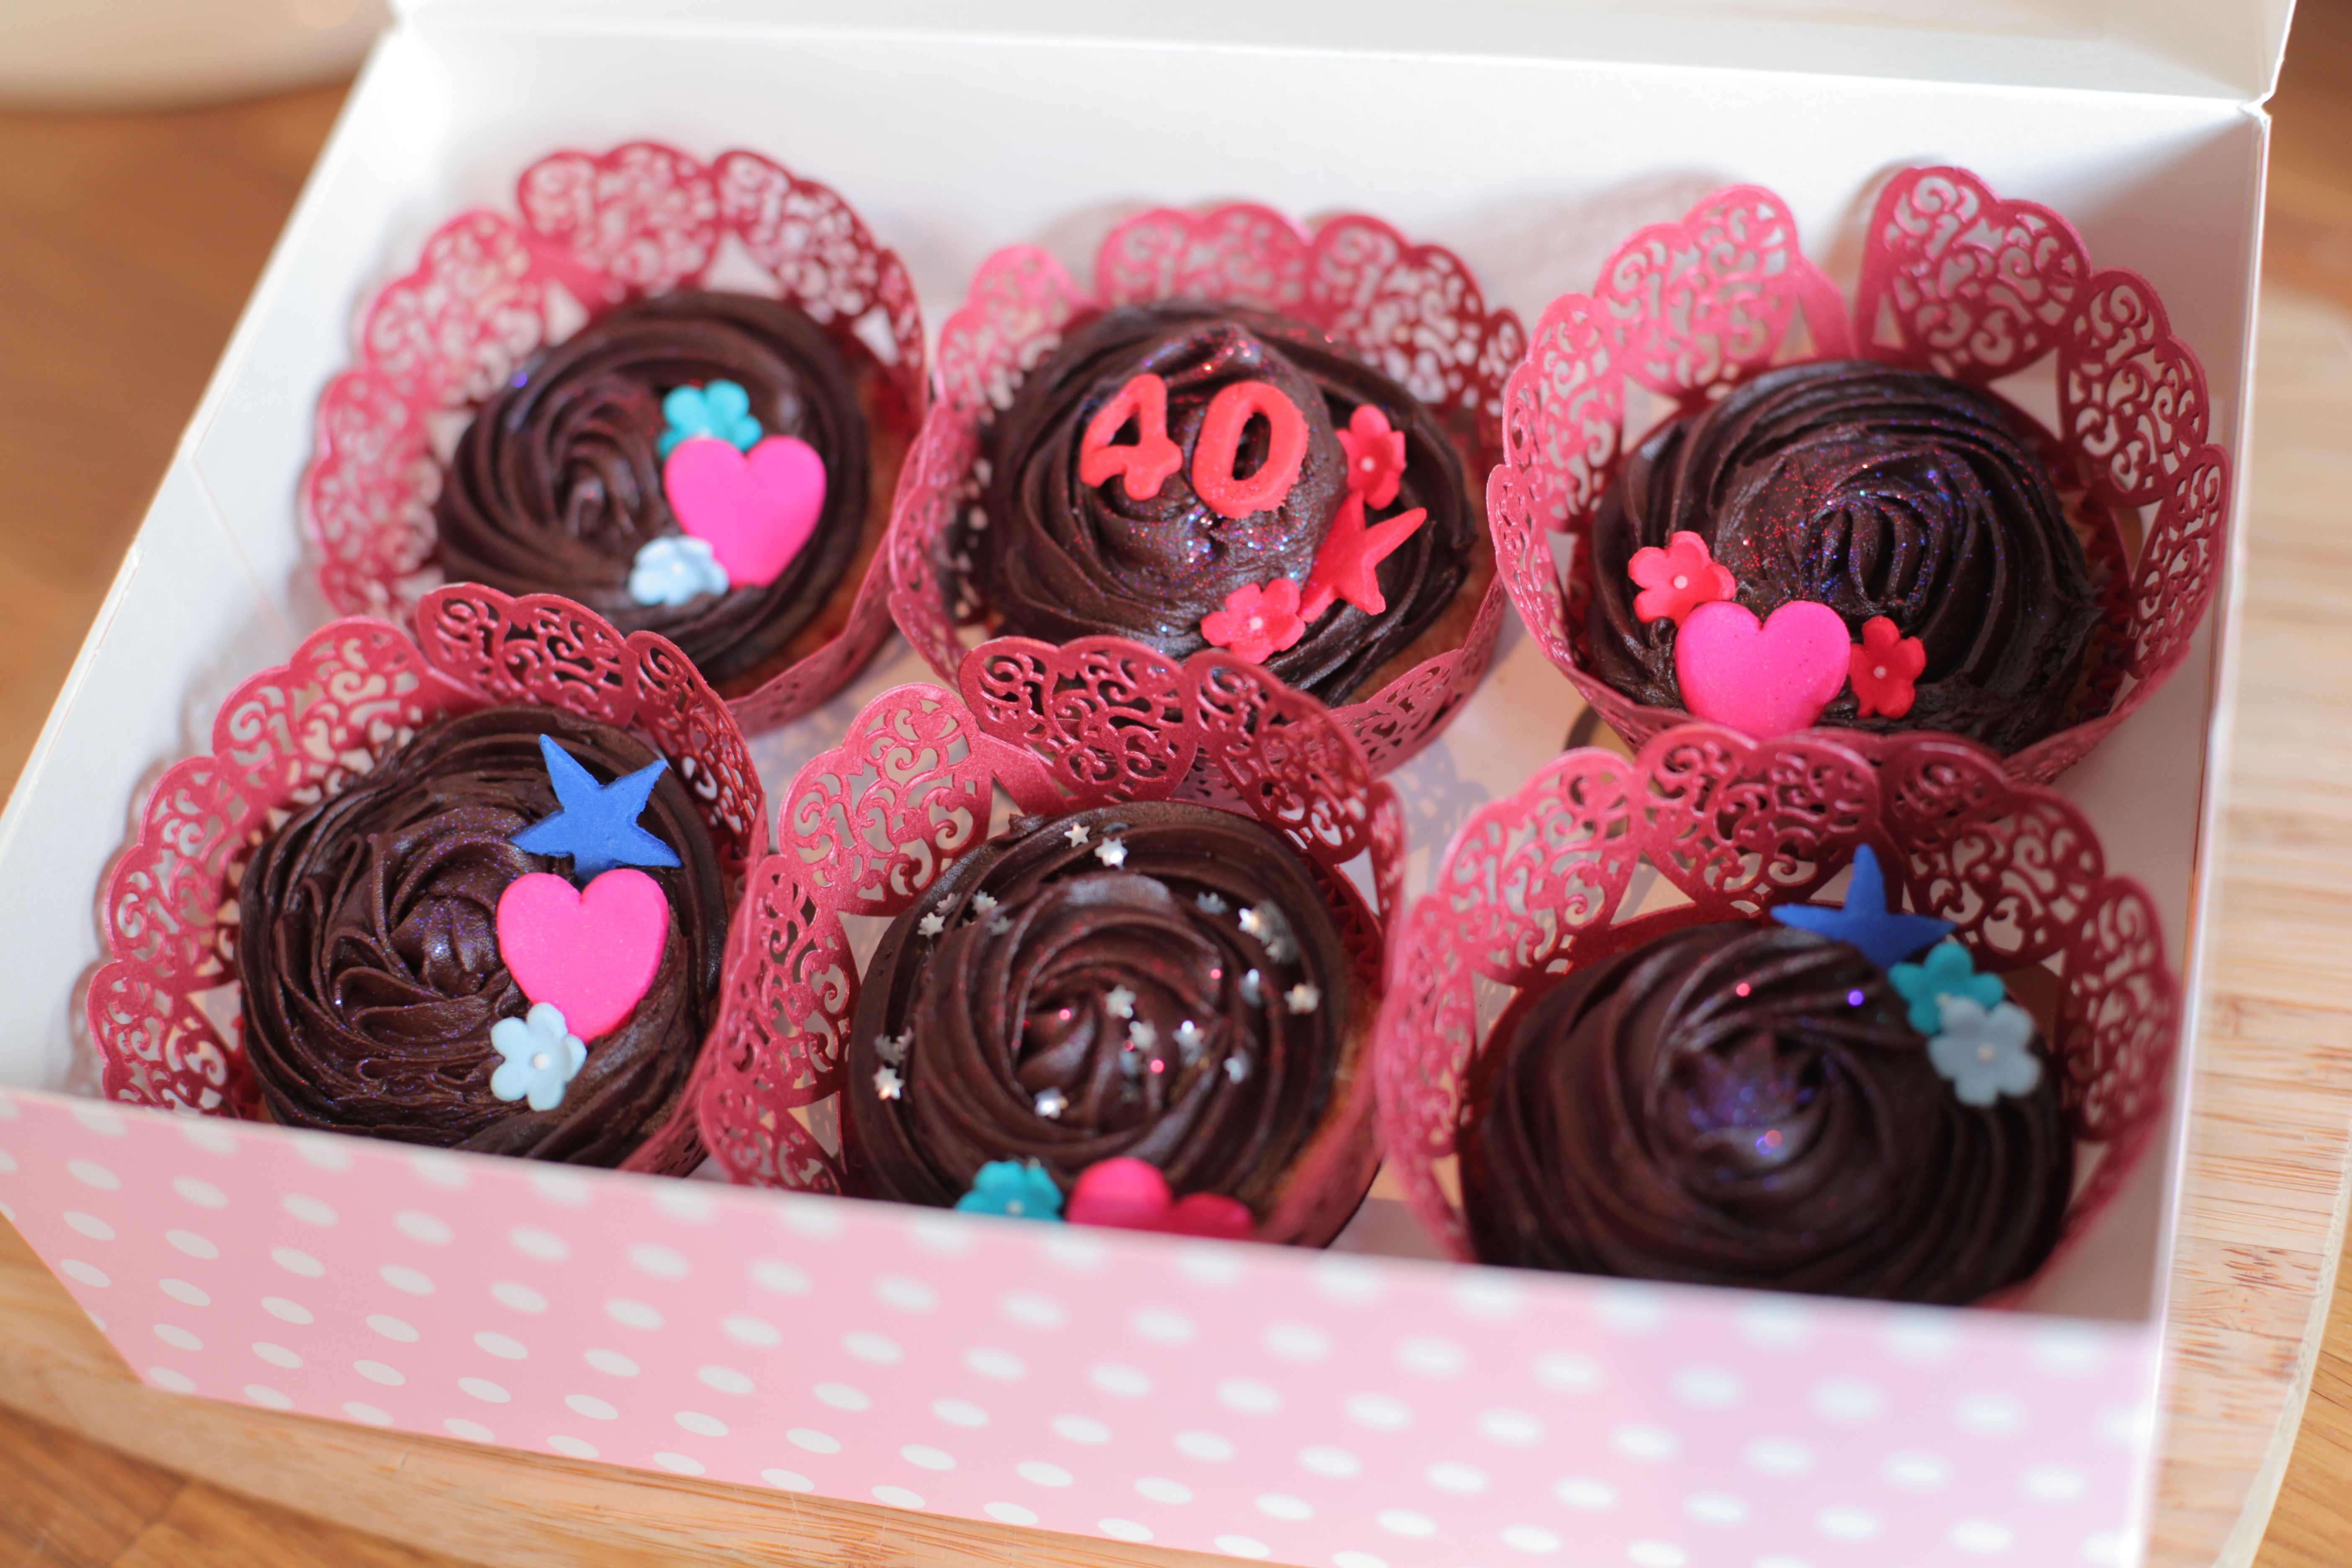 Ruby wedding anniversary cupcakes   Delicious   Pinterest ...